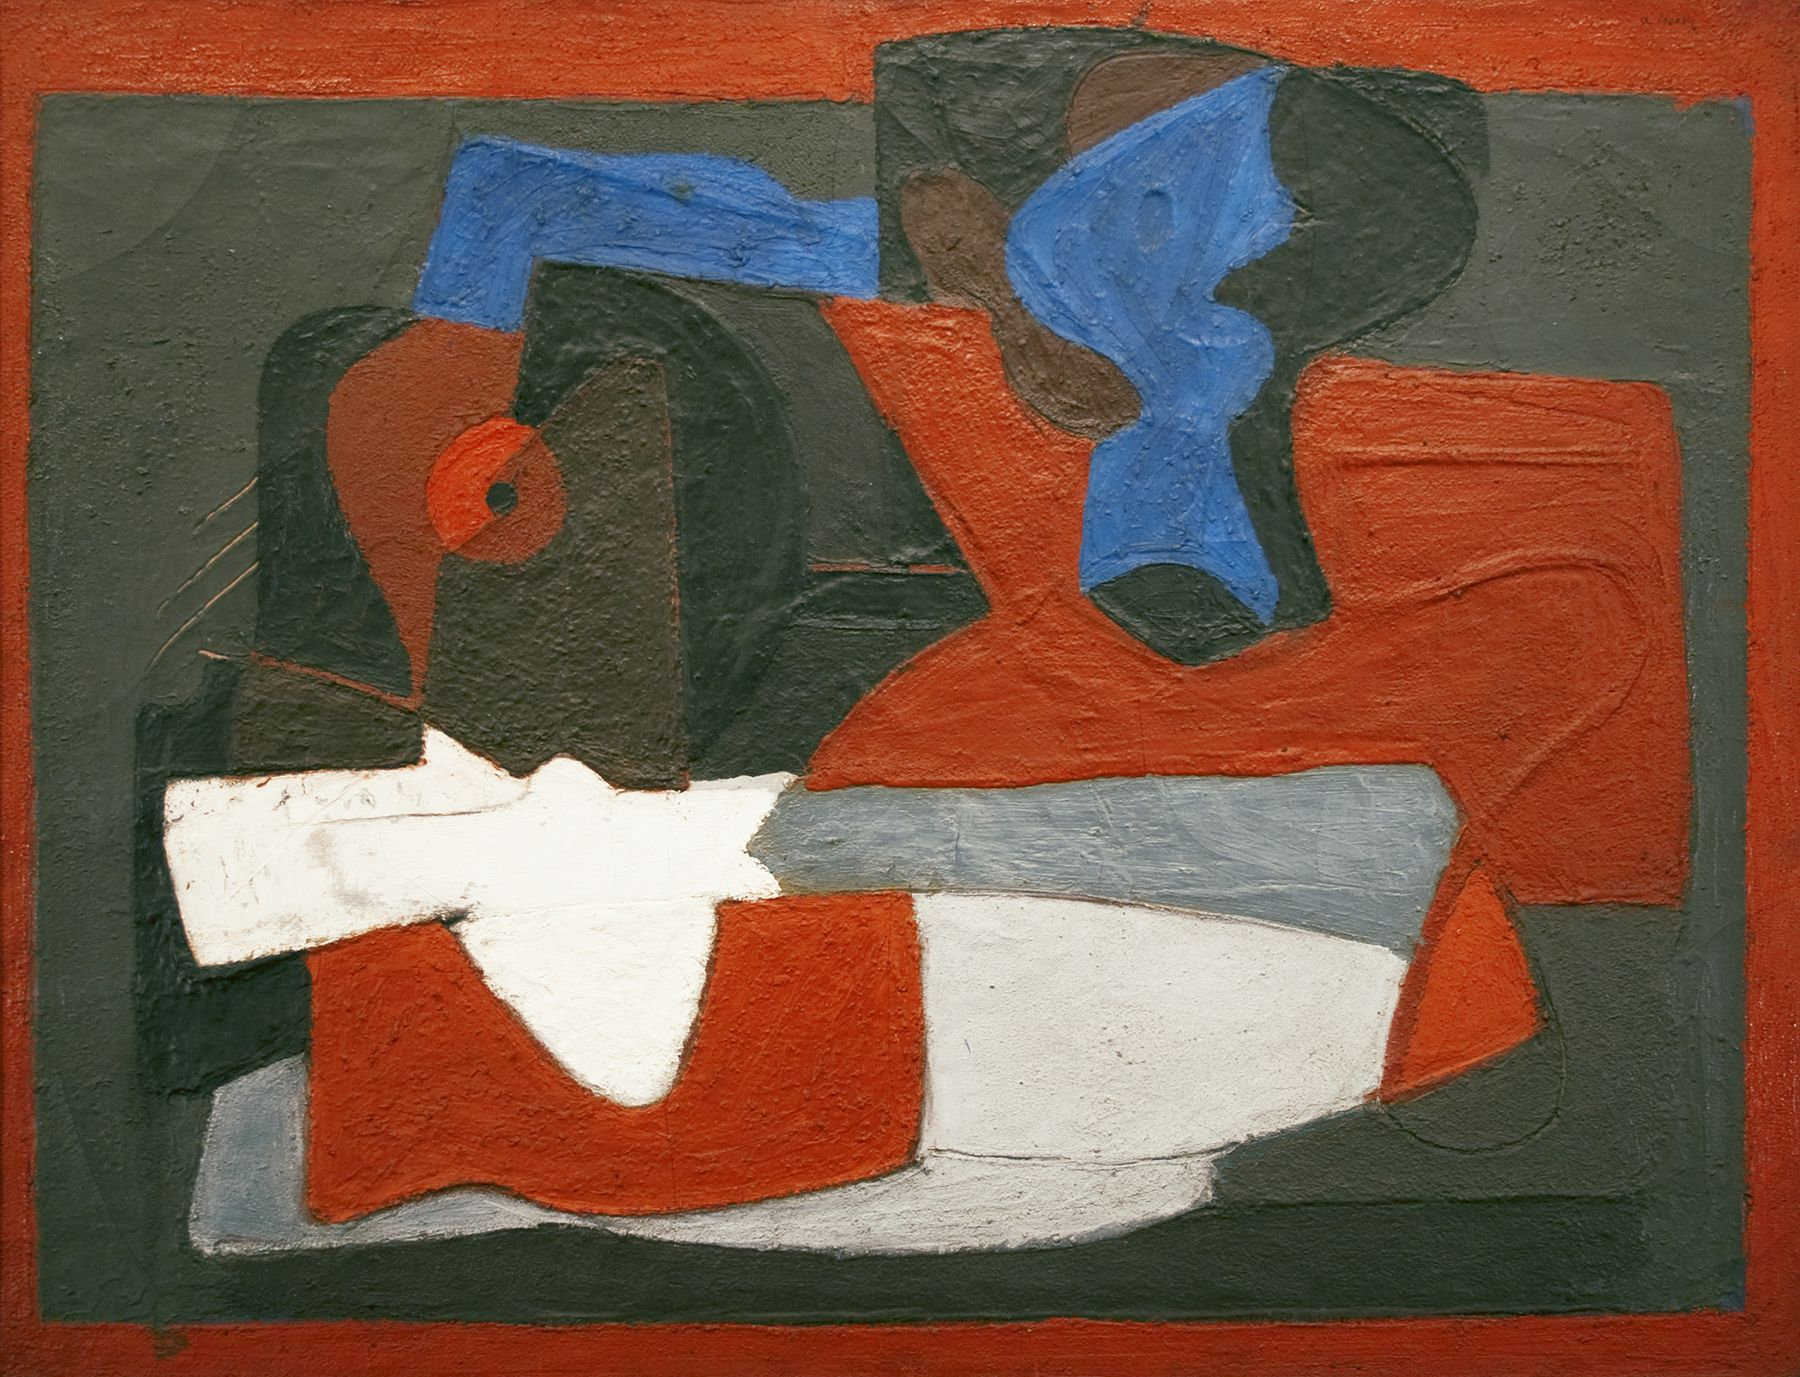 arshile gorky, Enigma (Composition of Forms on Table), 1928-29, oil on canvas, 33 x 44 inches